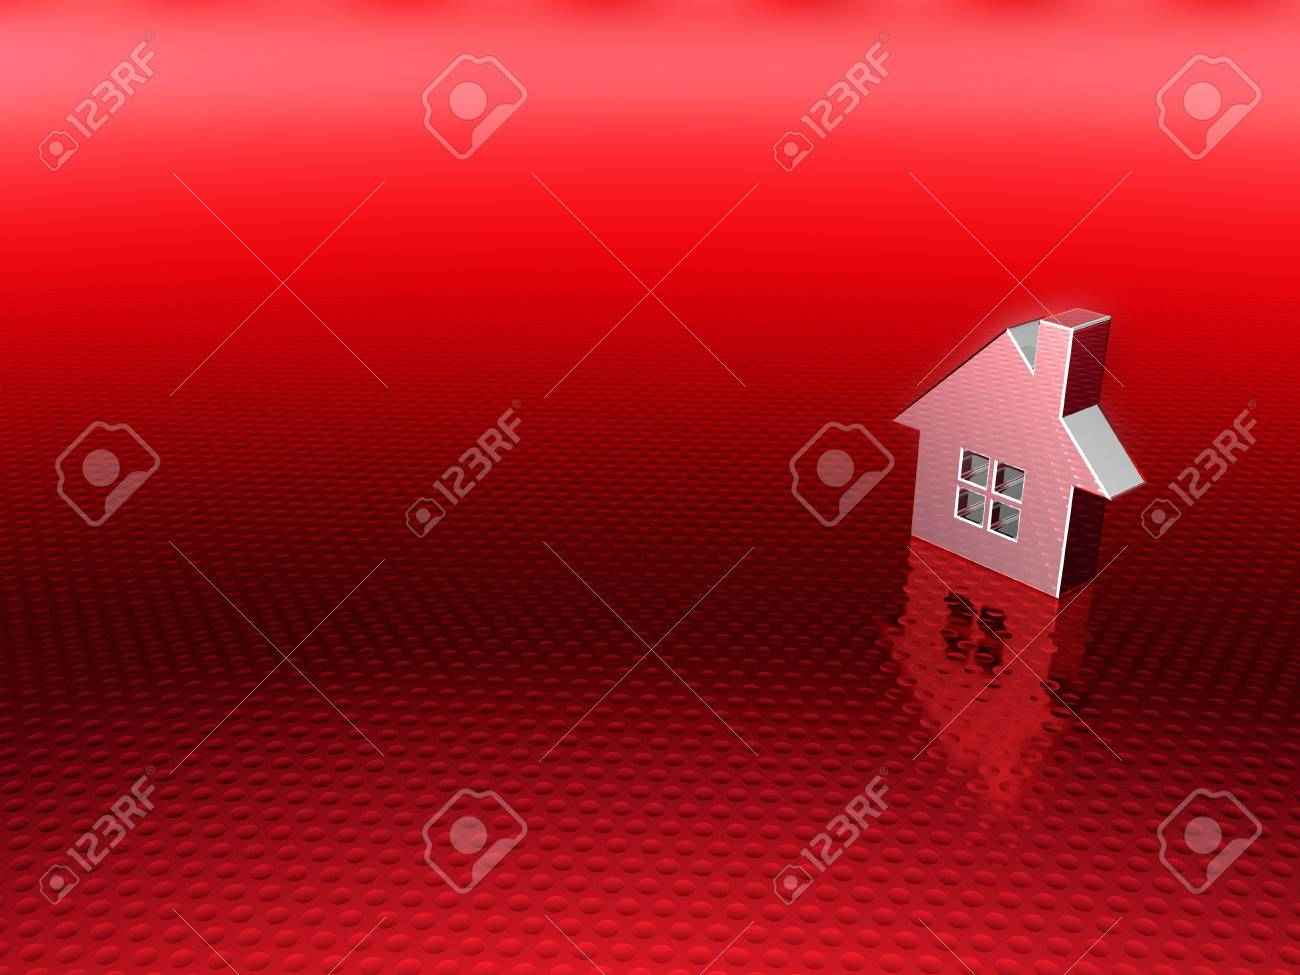 Real estate background Stock Photo - 810623